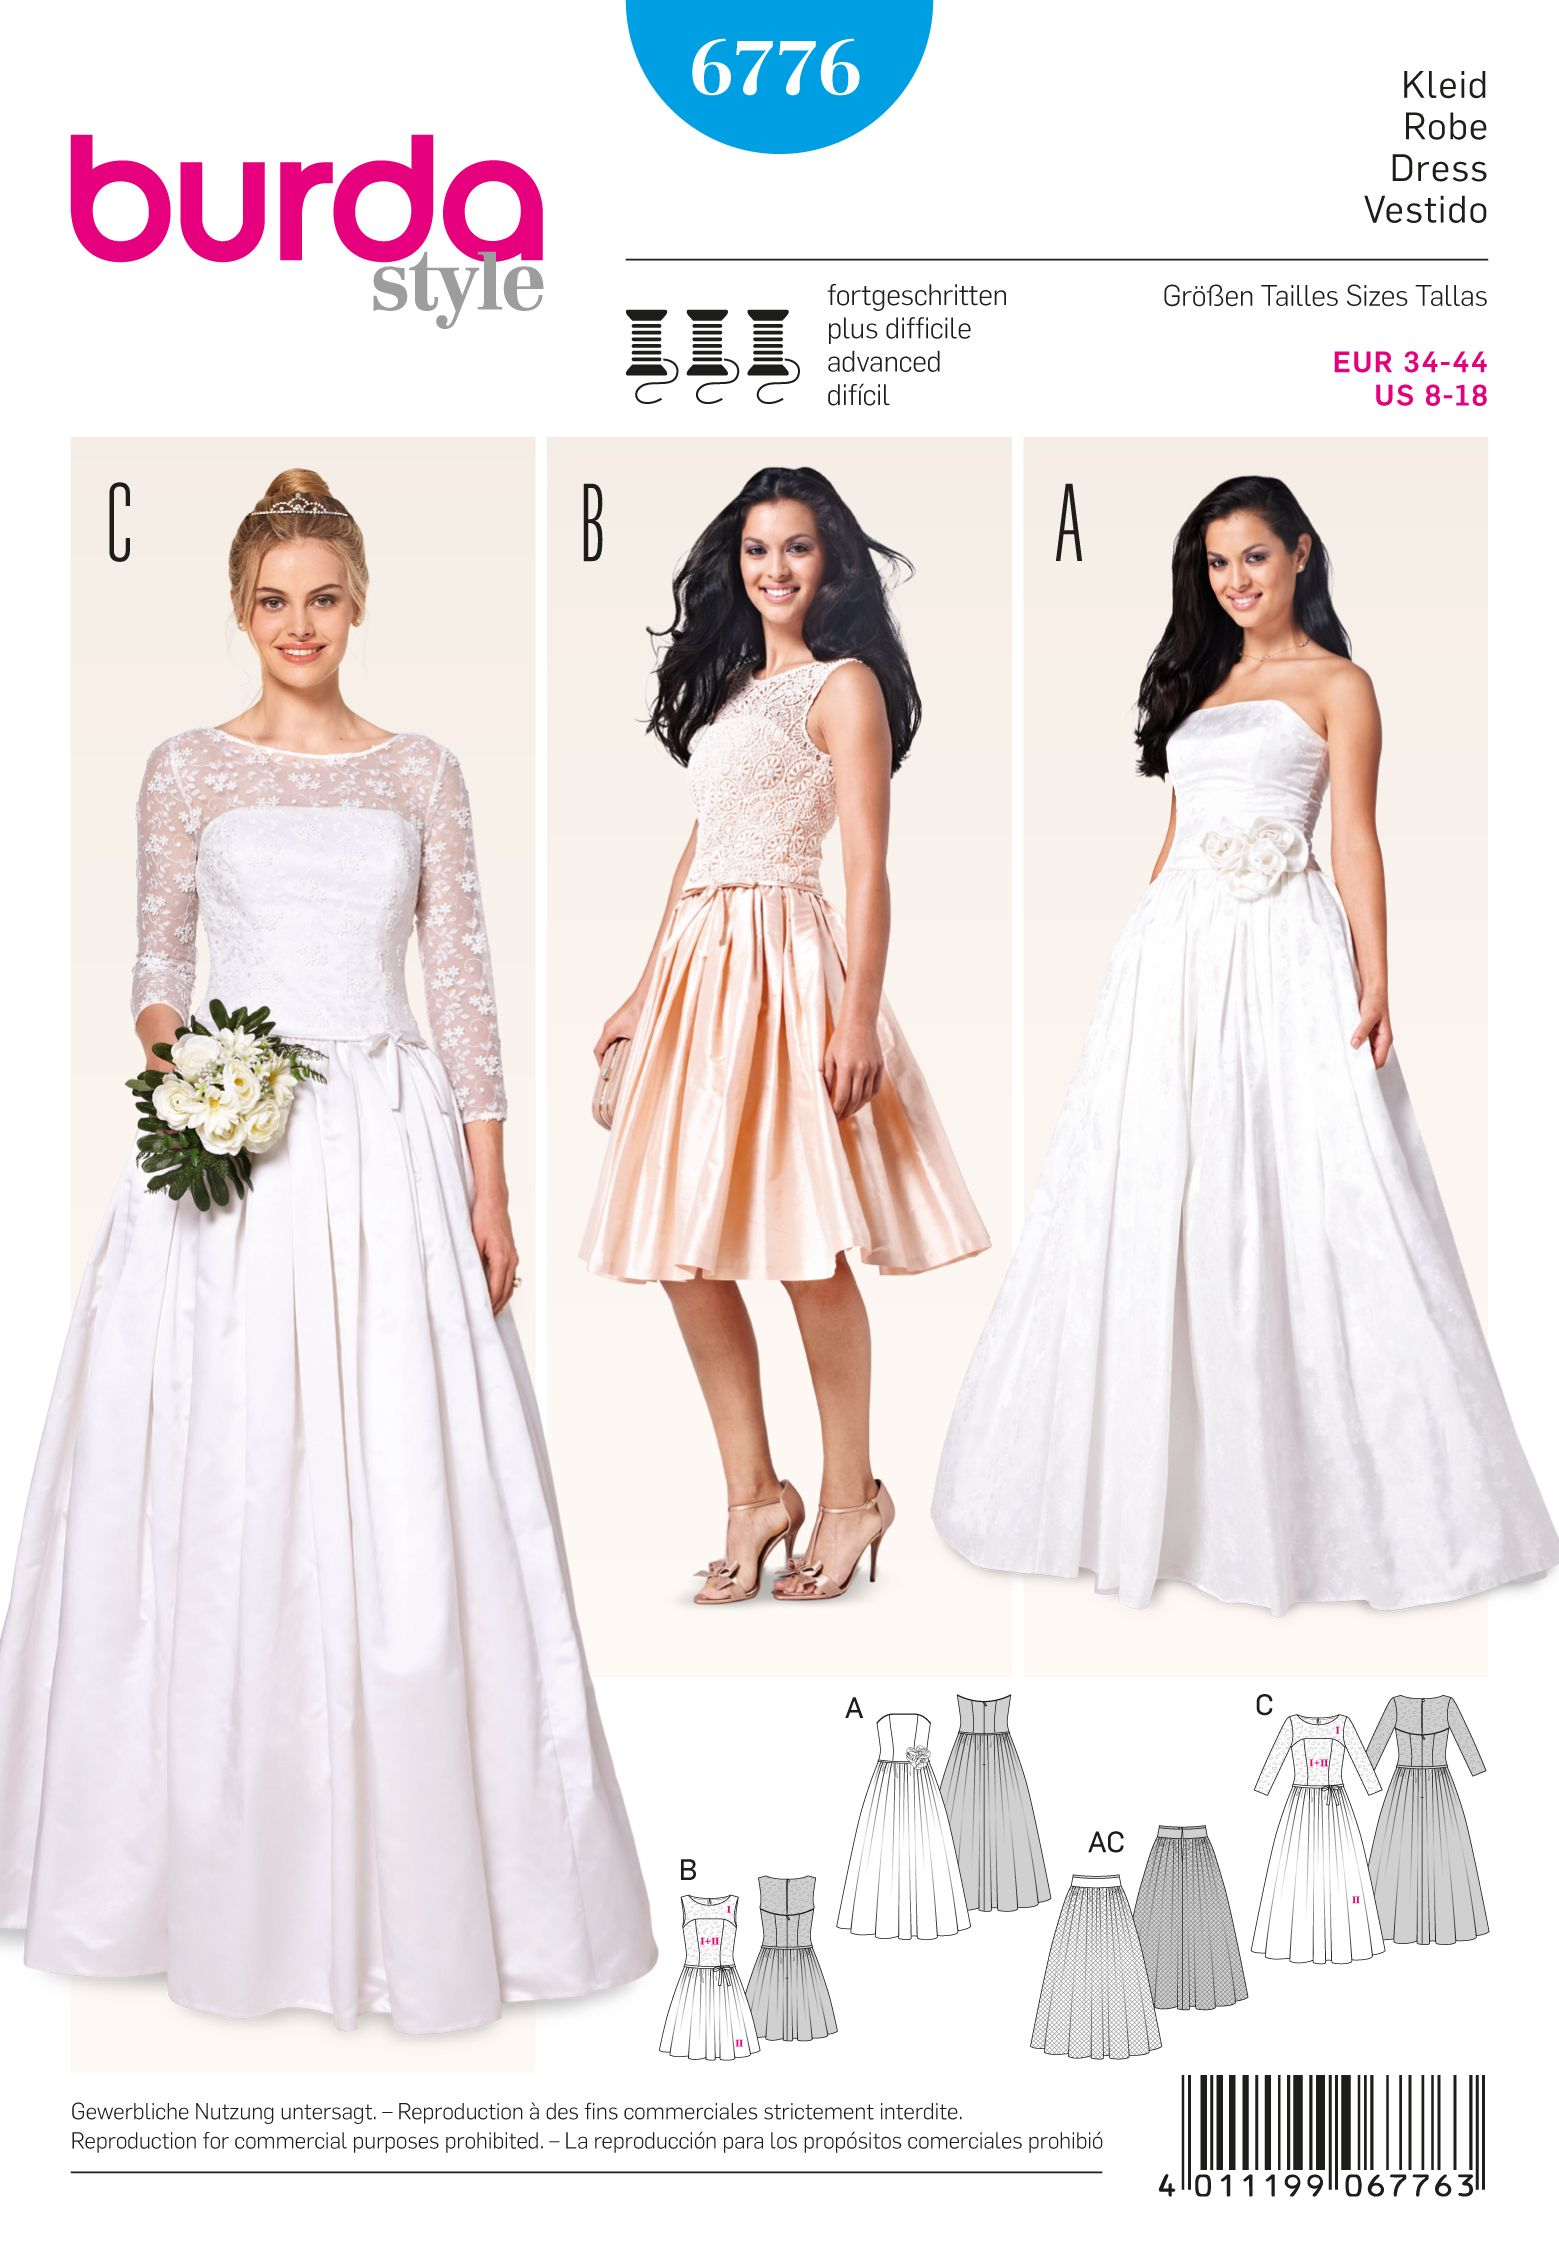 Burda 6776 Burda Style Evening & Bridal Wear | Pinterest | Lieferung ...